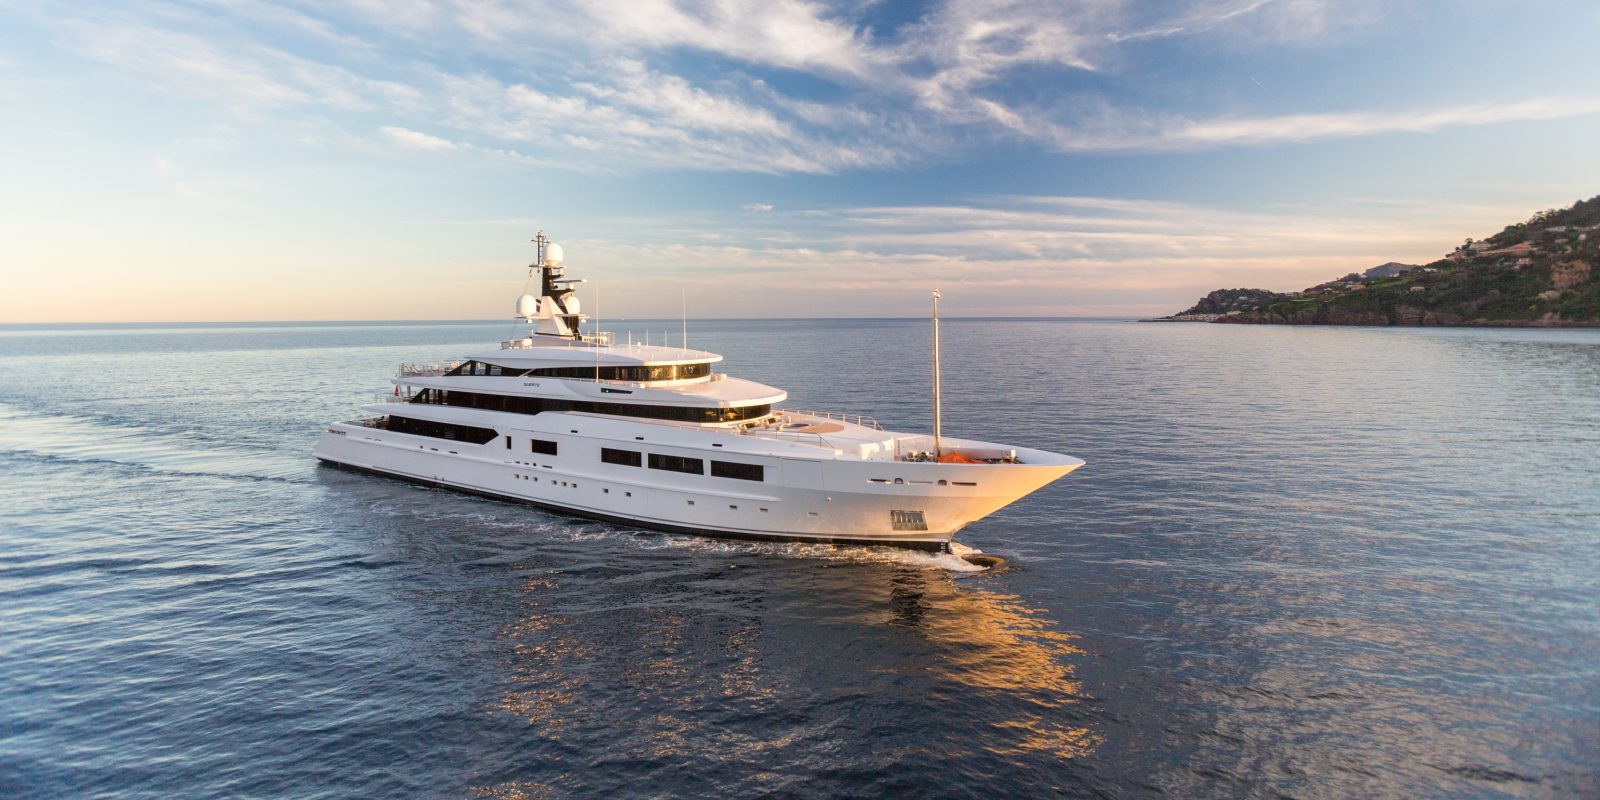 Superyacht for sale cruising the mediterranean